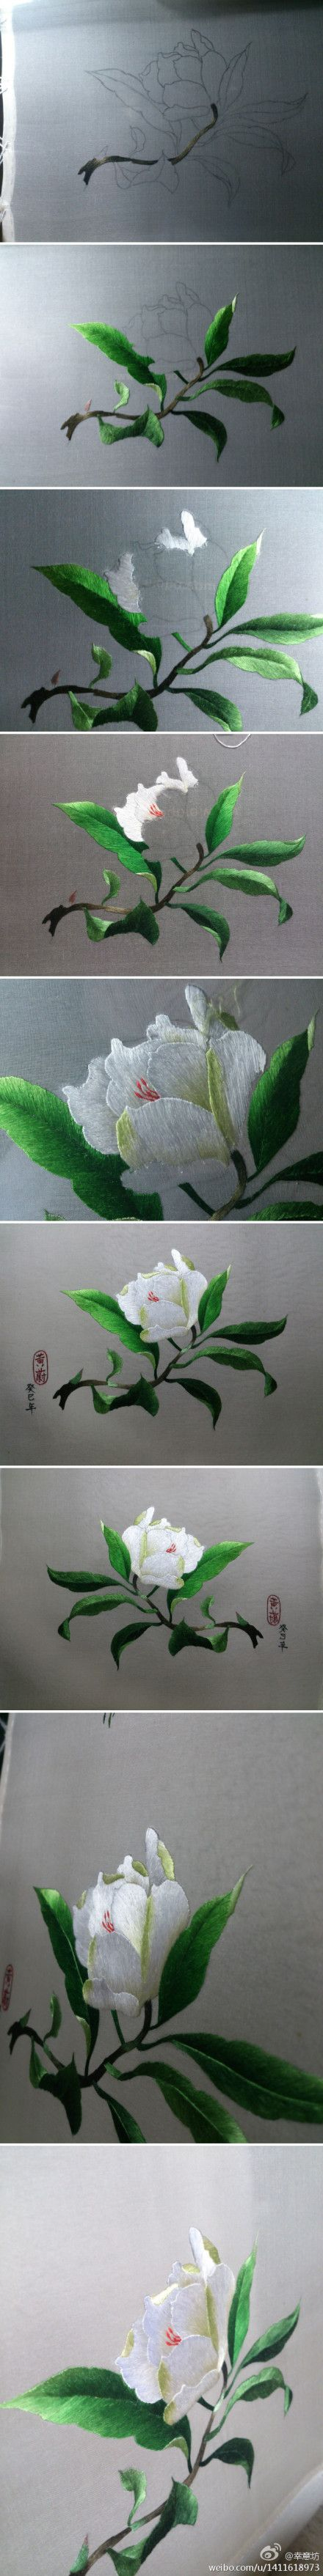 Chinese Embroidery                                                                                                                                                                                 Más